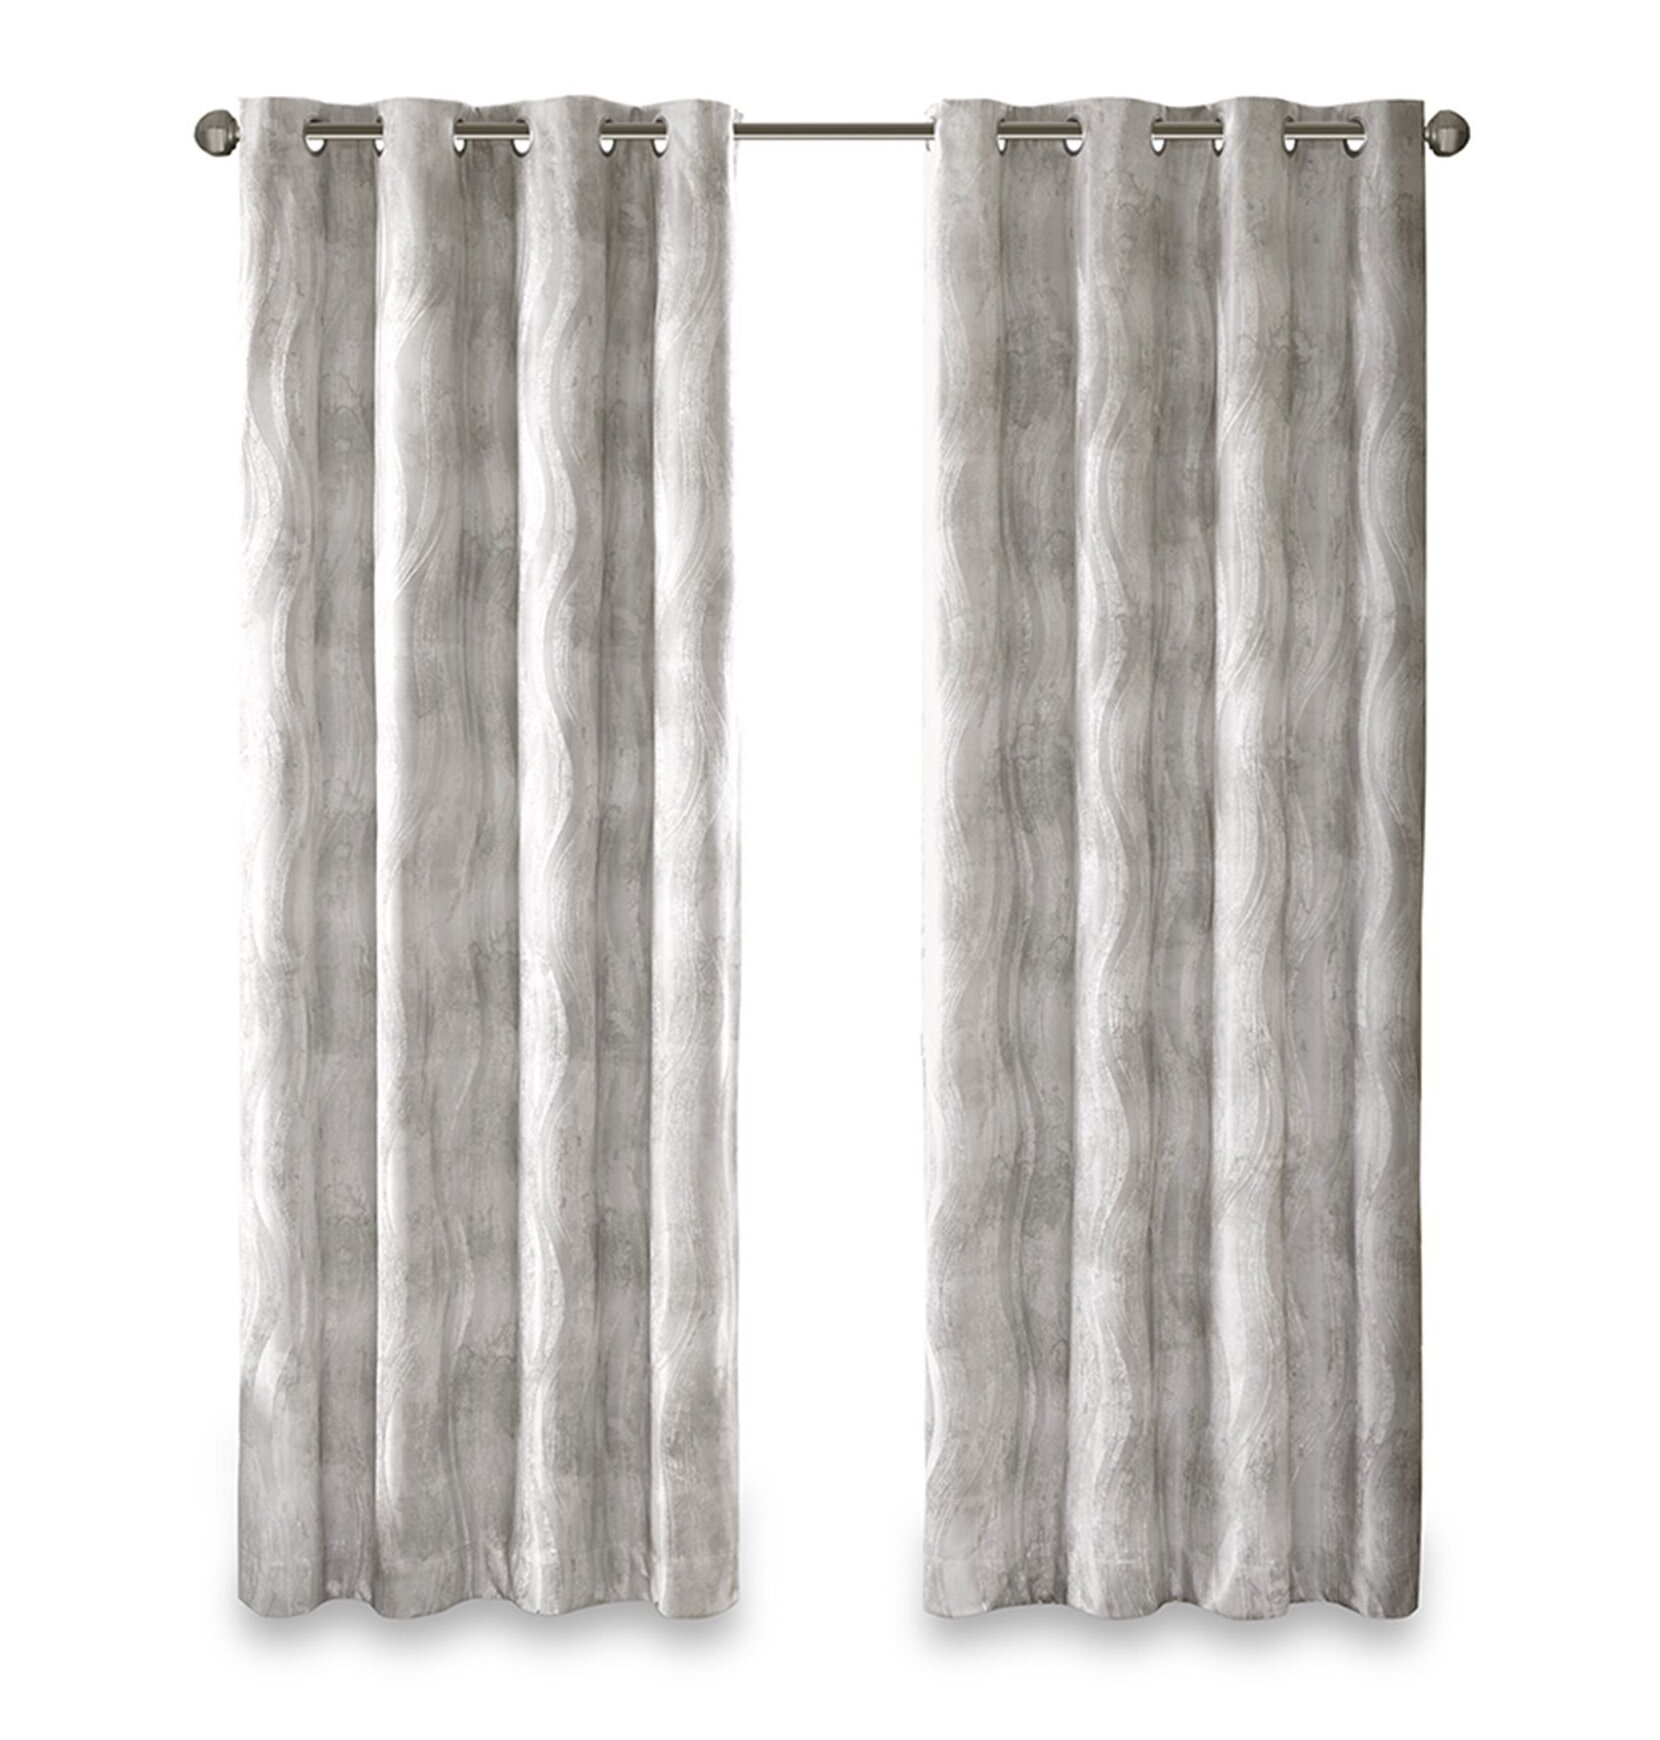 Striped Blackout Curtains You Ll Love In 2021 Wayfair